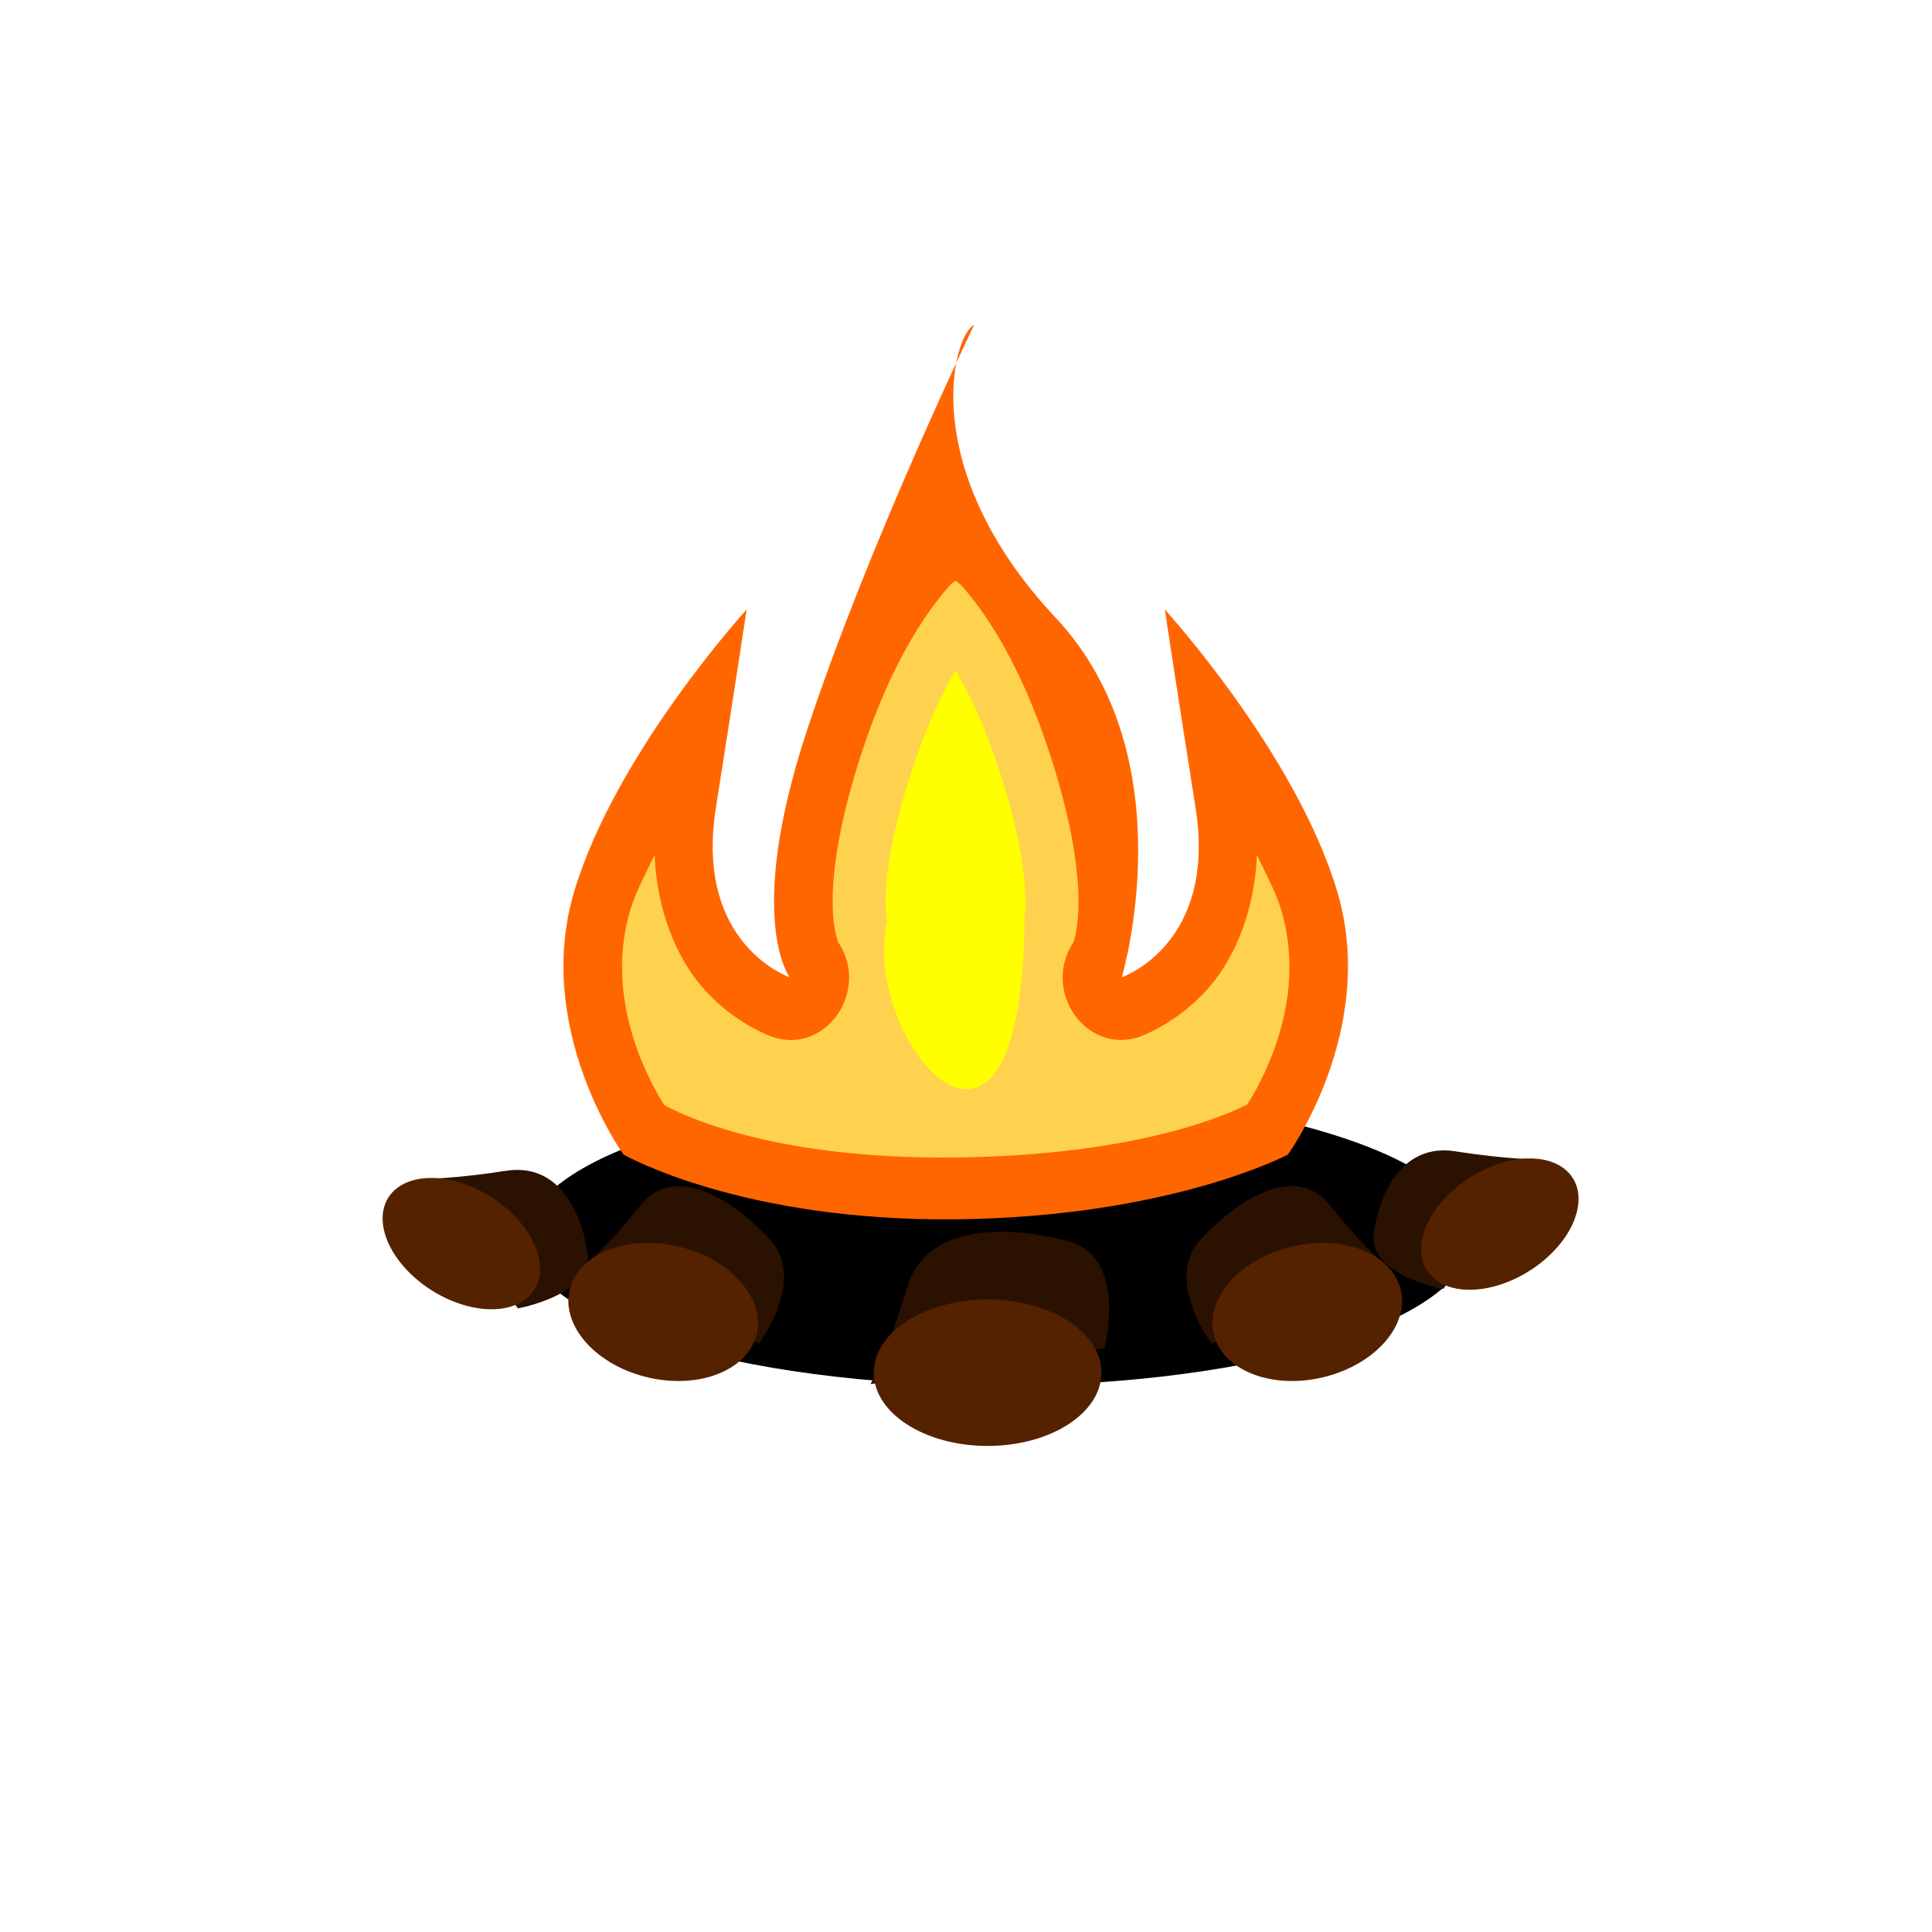 Campfire clipart #2, Download drawings